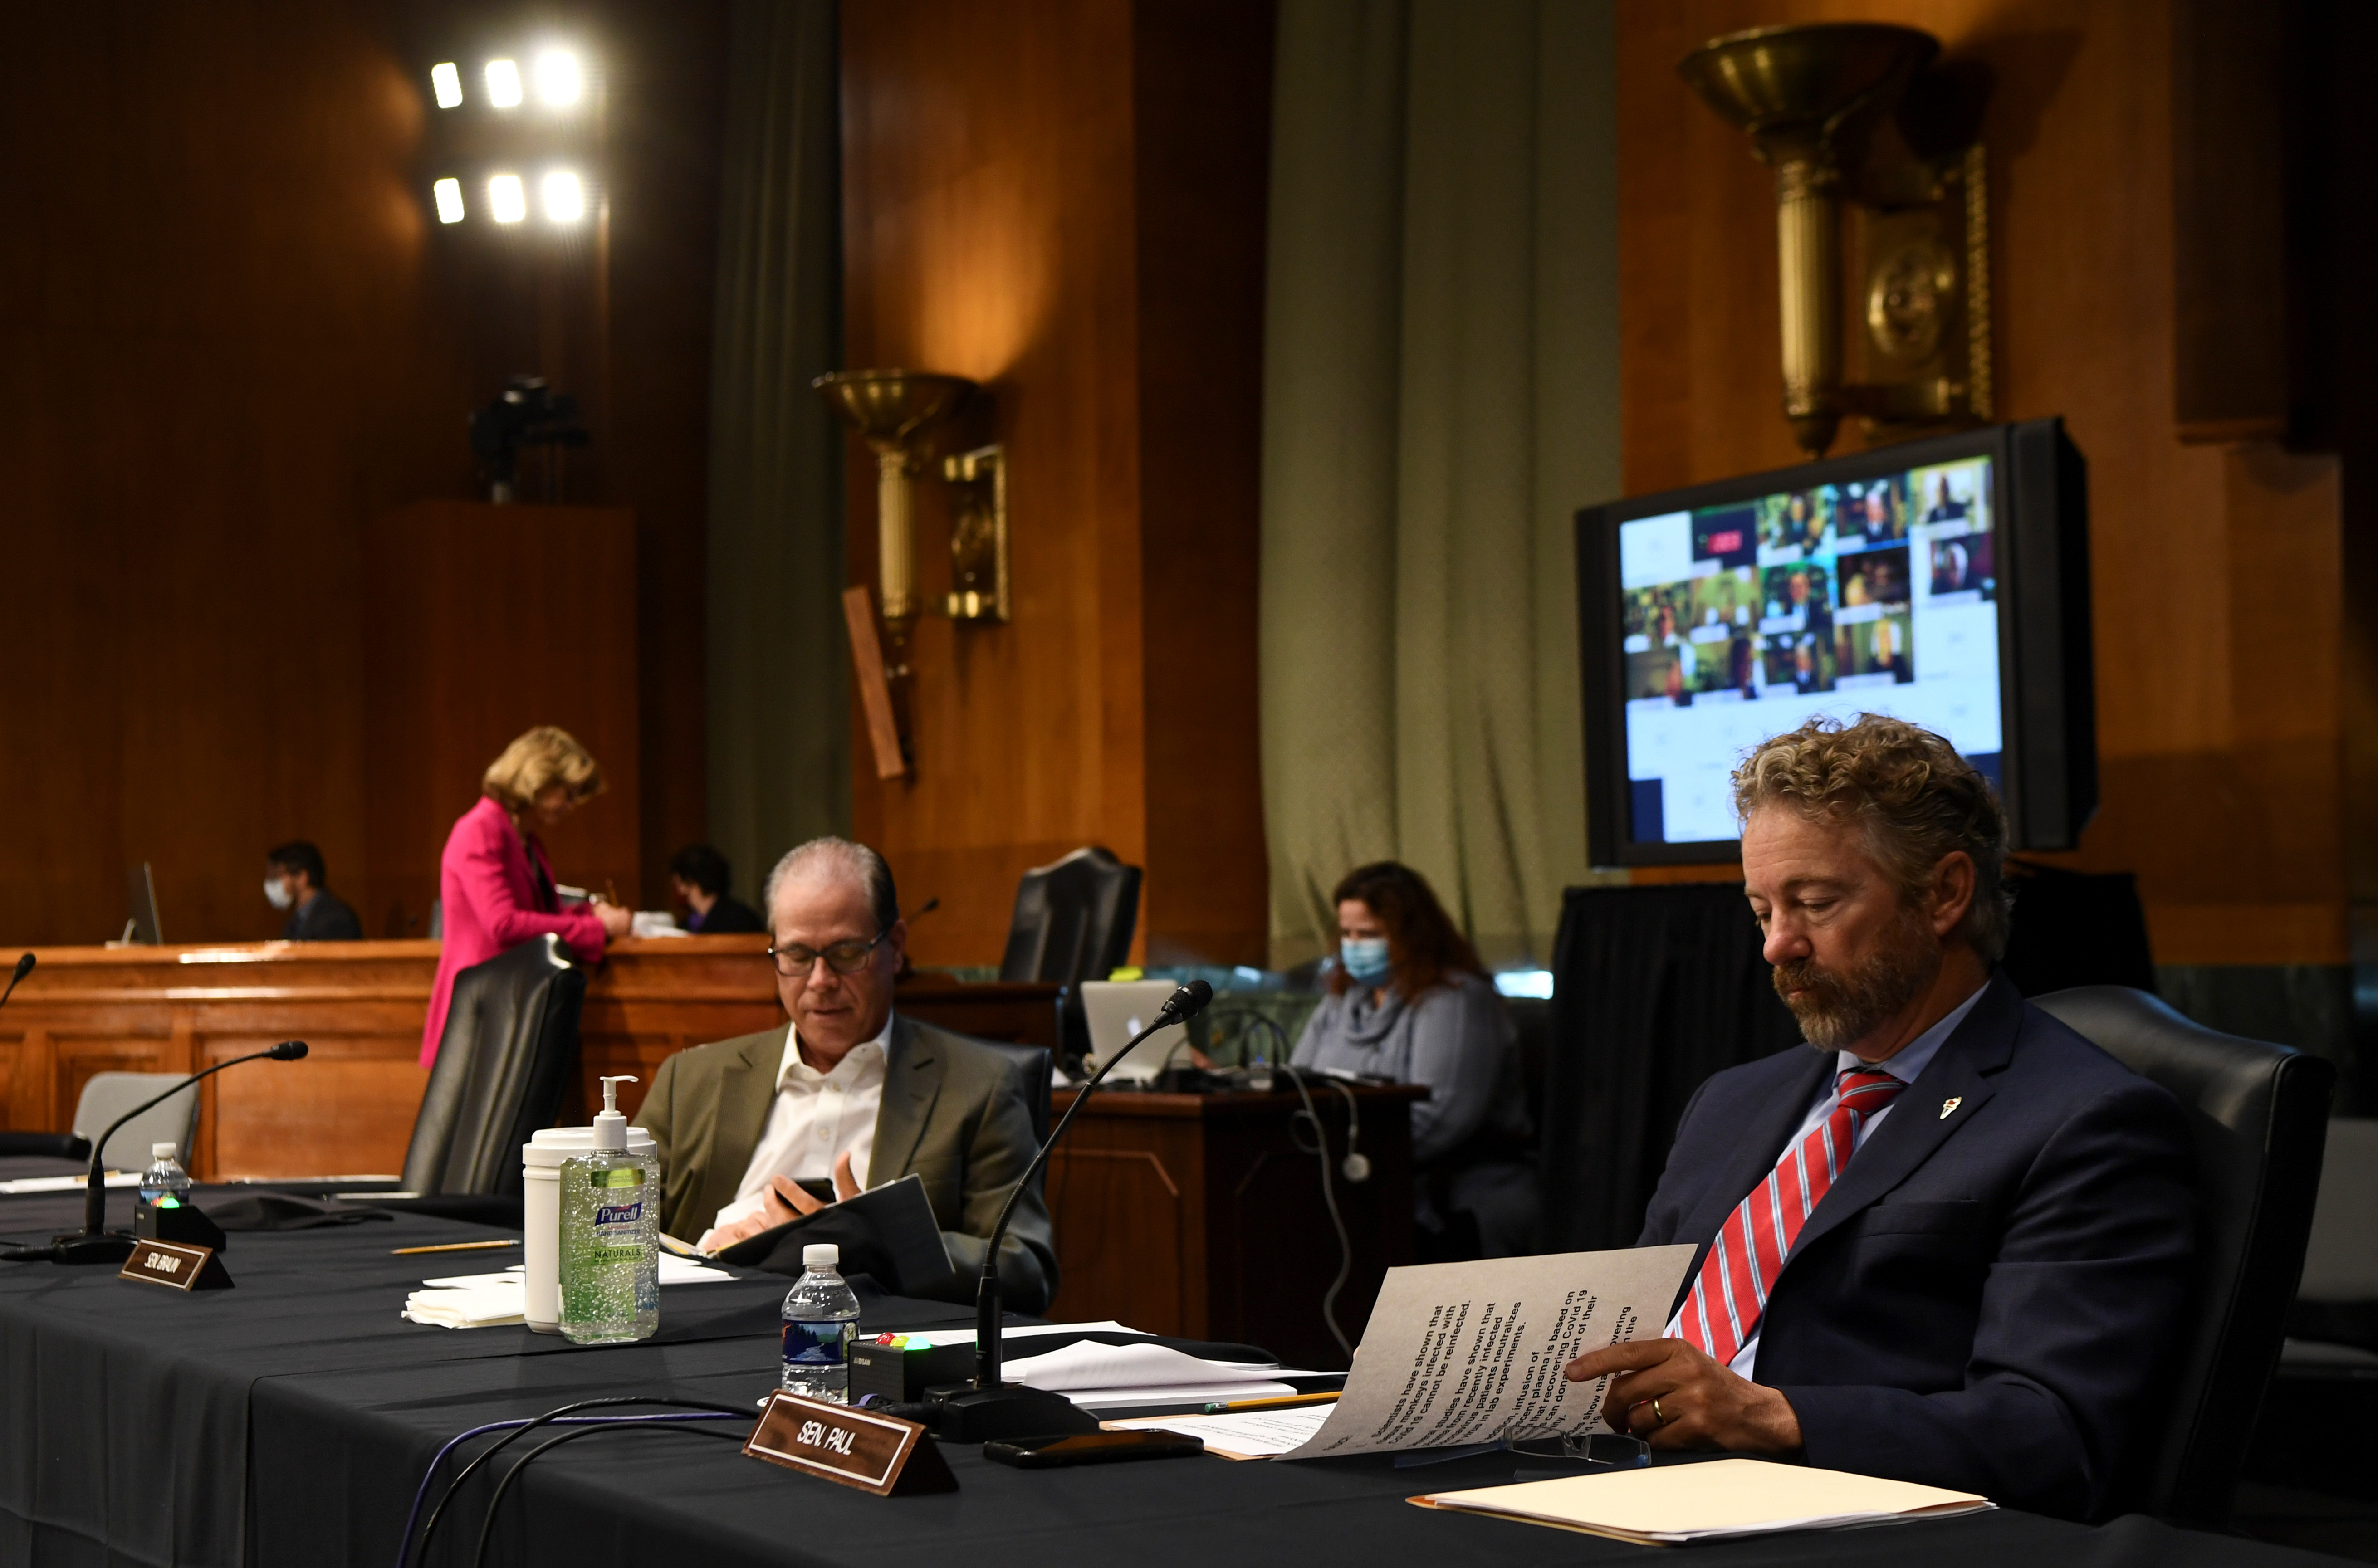 U.S. Senator Rand Paul (R-KY) looks over his notes during the Senate Committee for Health, Education, Labor, and Pensions hearing on the coronavirus disease (COVID-19) response, in Washington, U.S., May 12, 2020. Toni L. Sandys/Pool via REUTERS